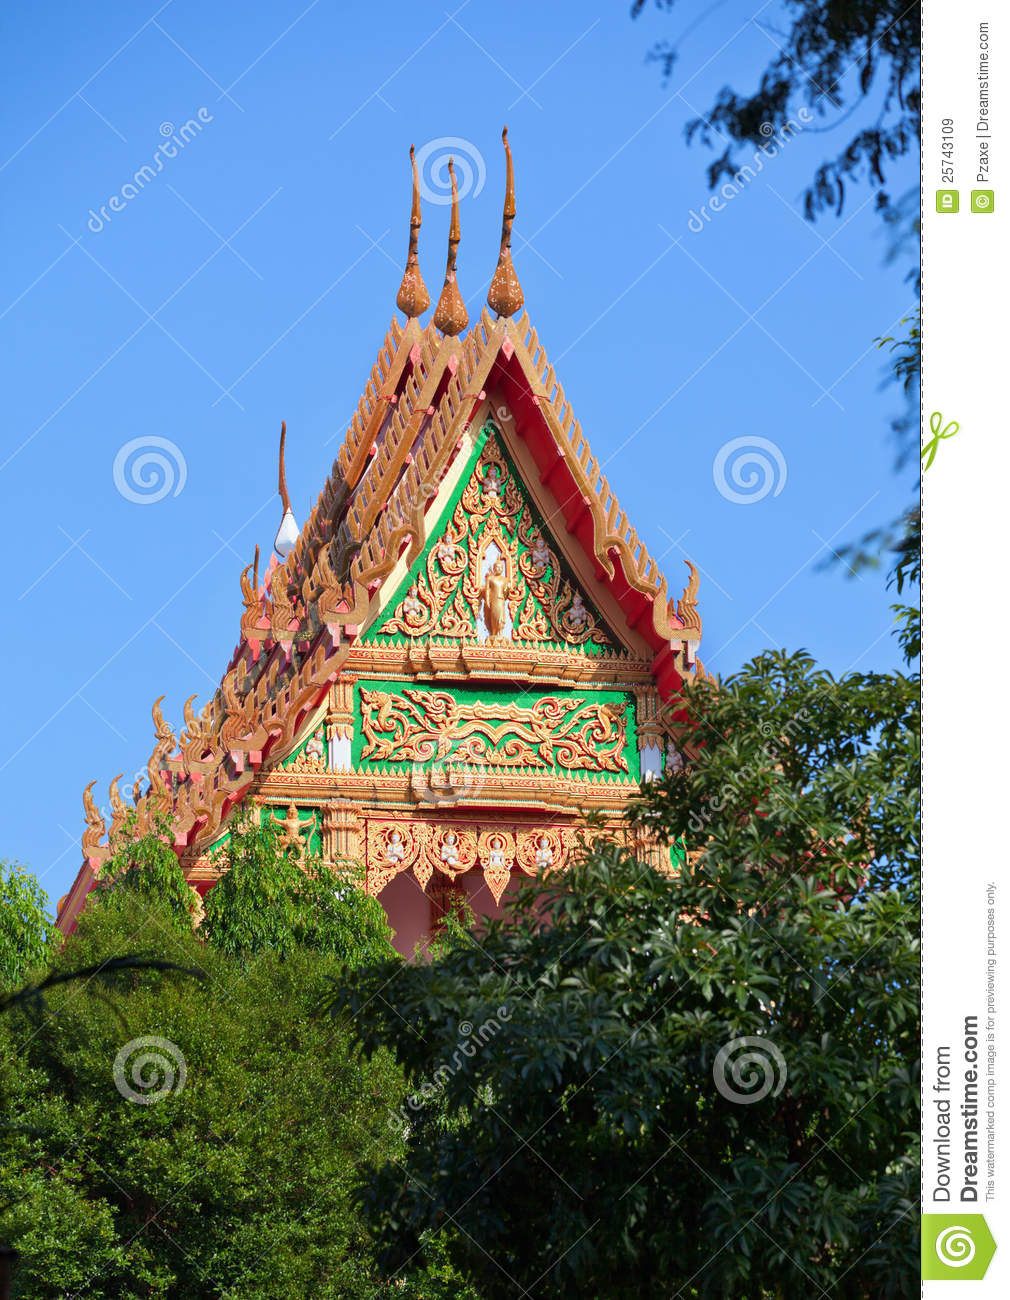 Roof of the Thai Monastery